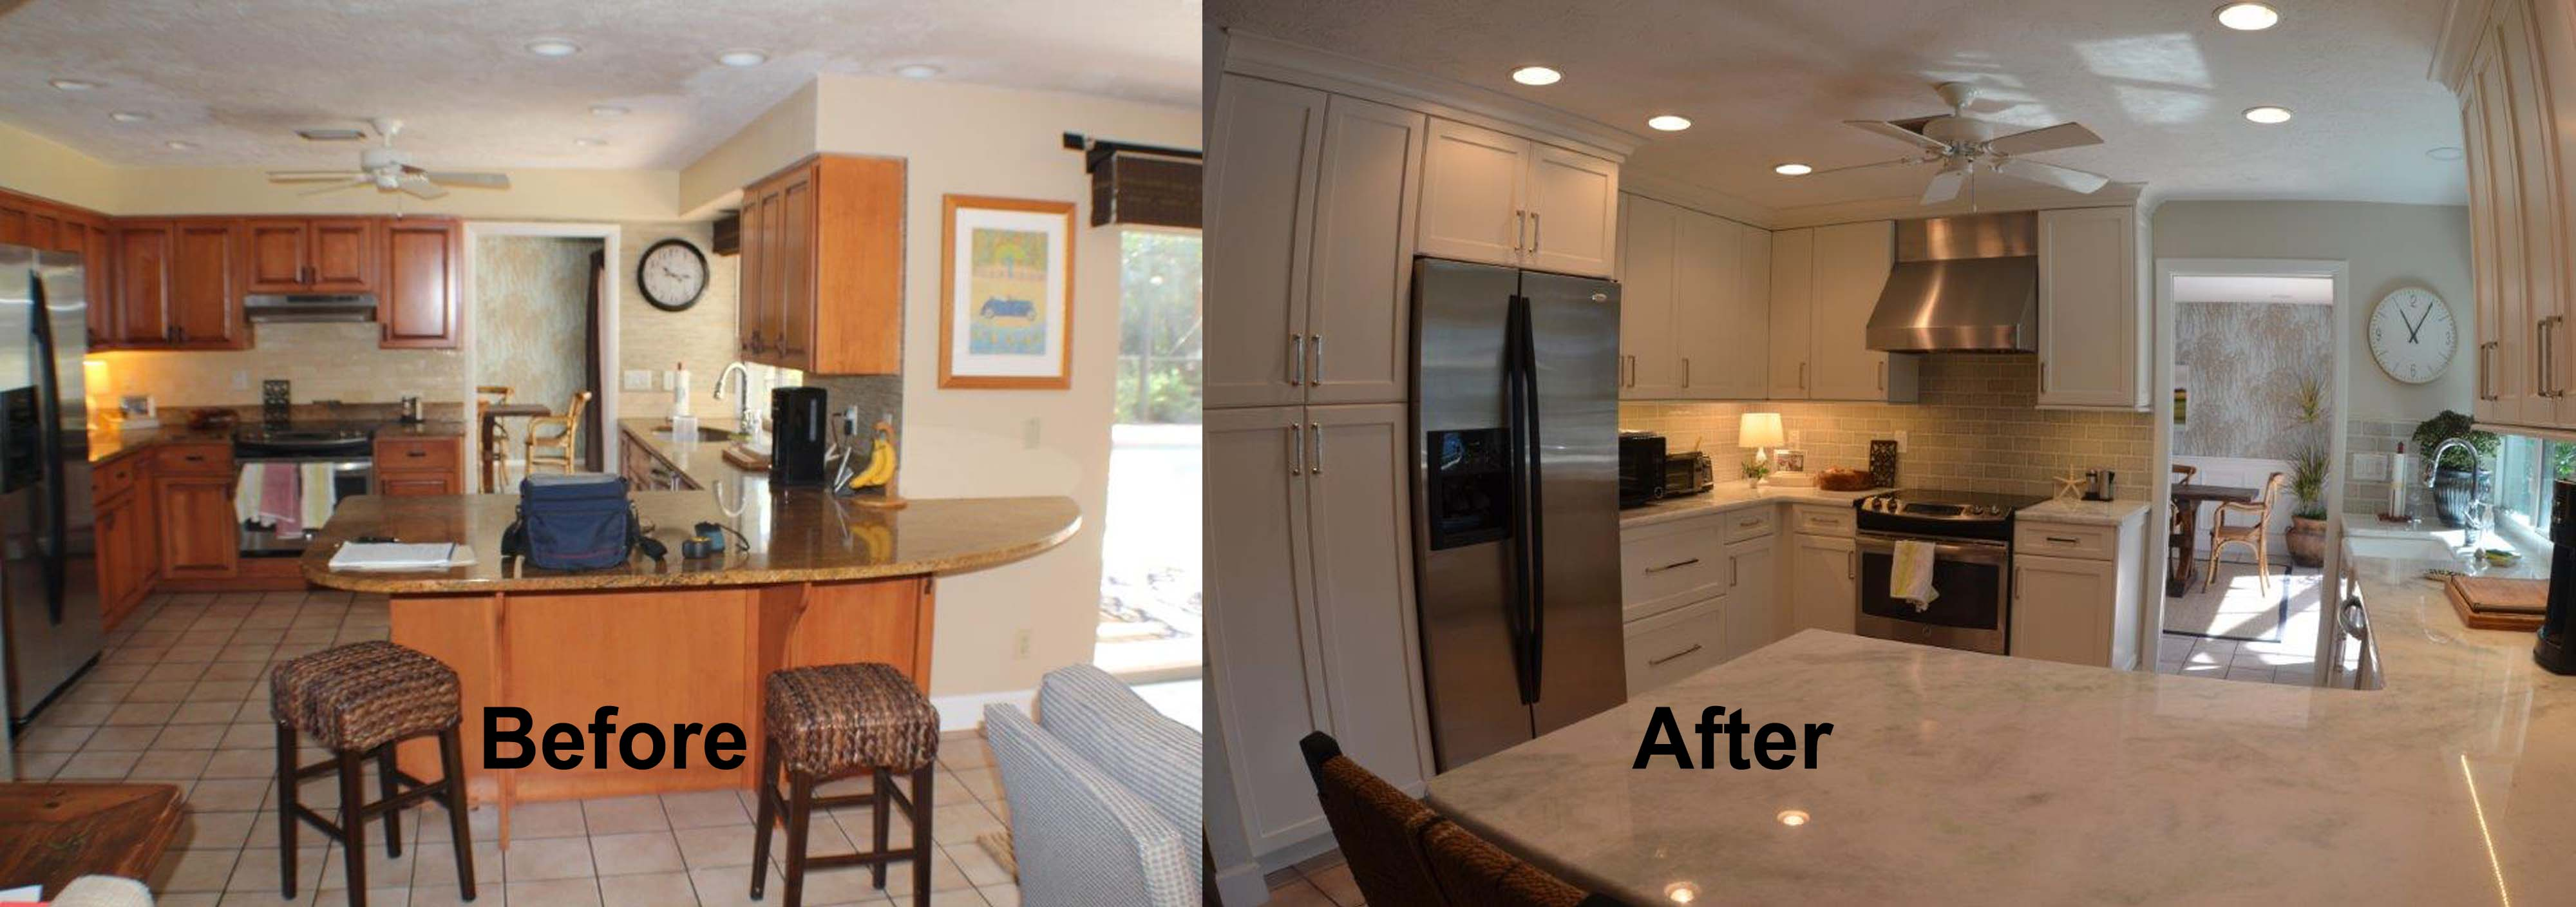 venice kitchen remodel project - kitchen and bath on the islekitchen